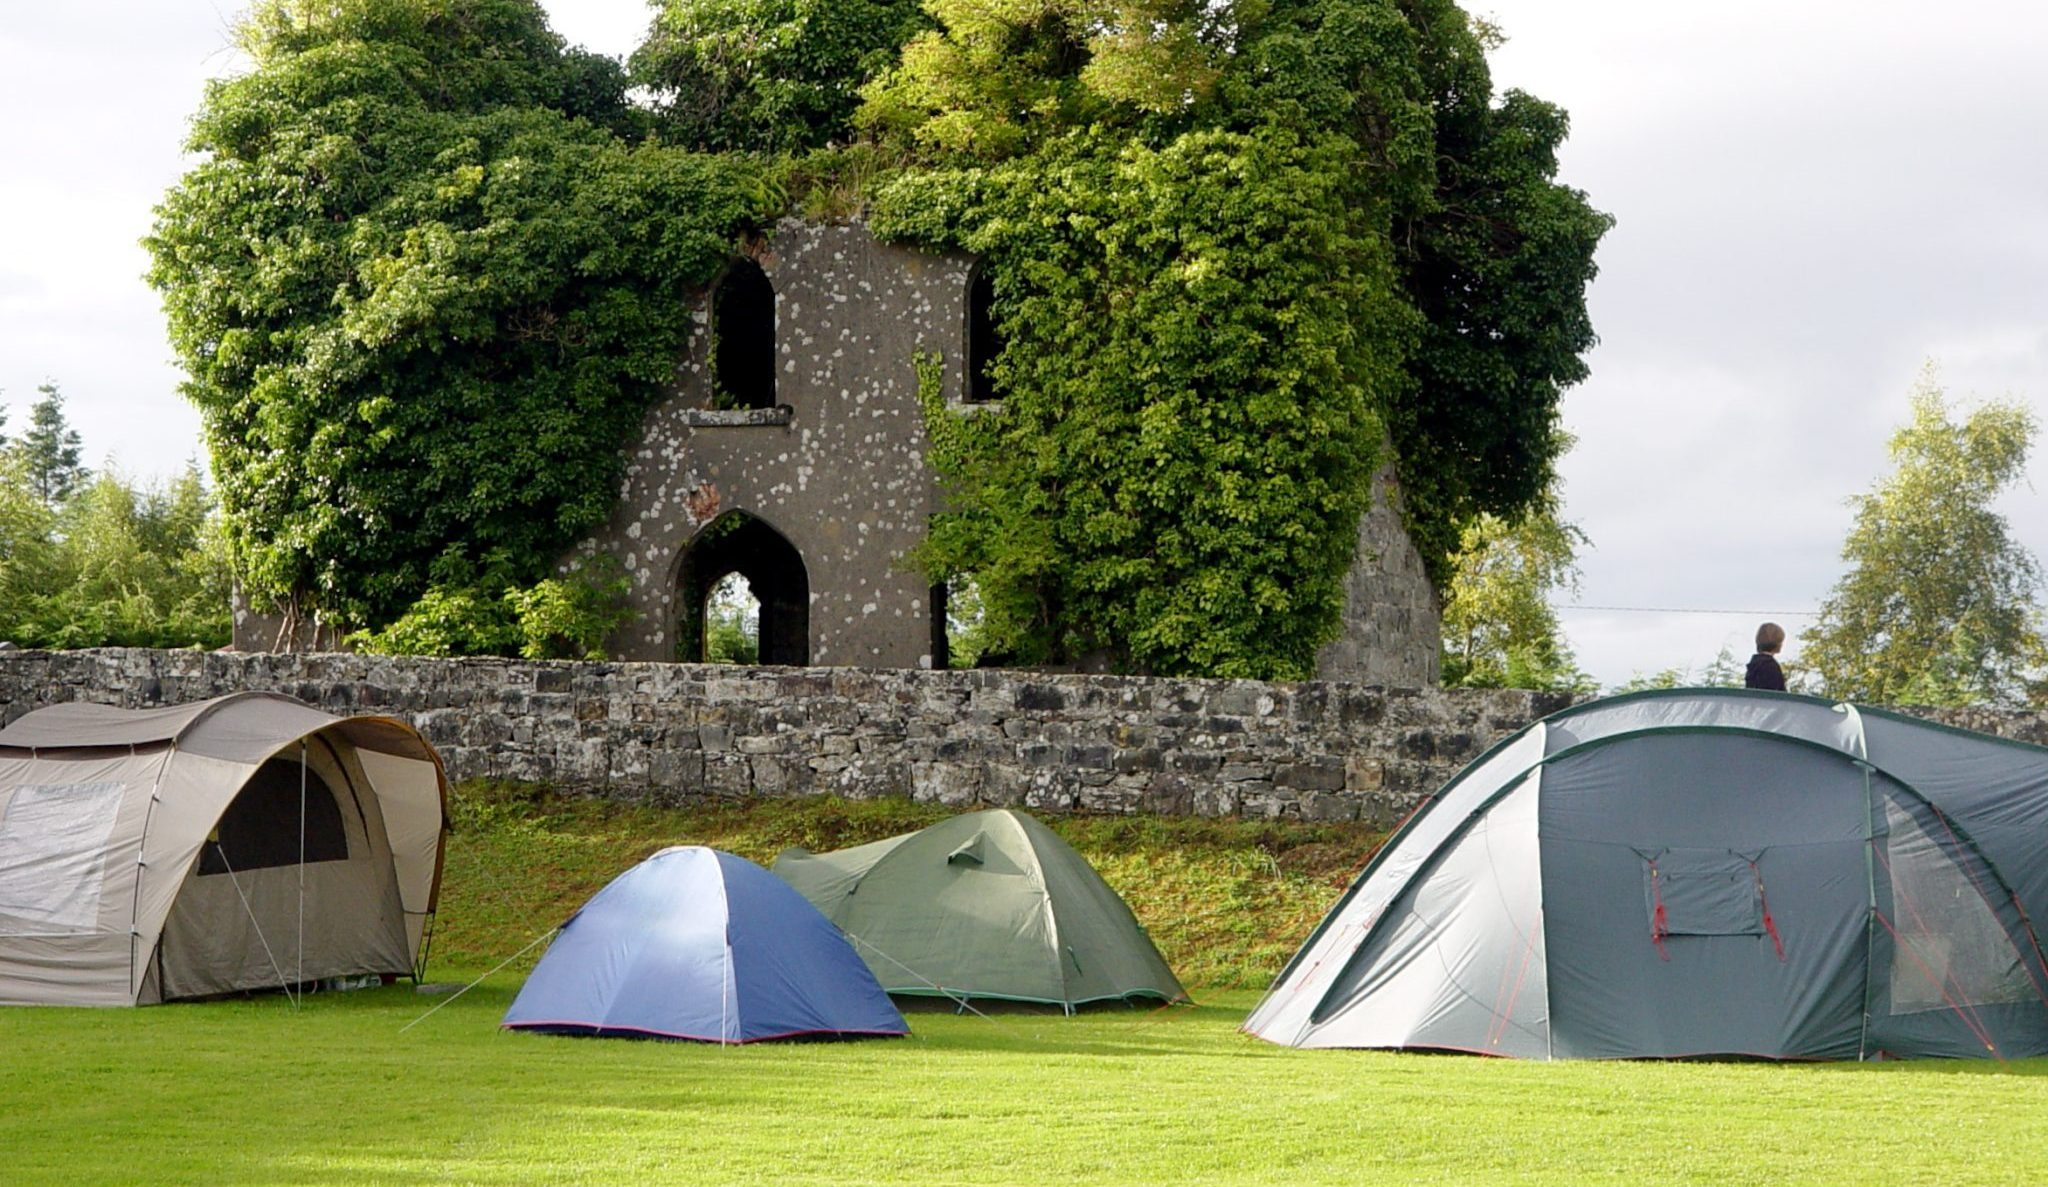 The Best Ireland Camping of 2020 (with Prices) - Tripadvisor